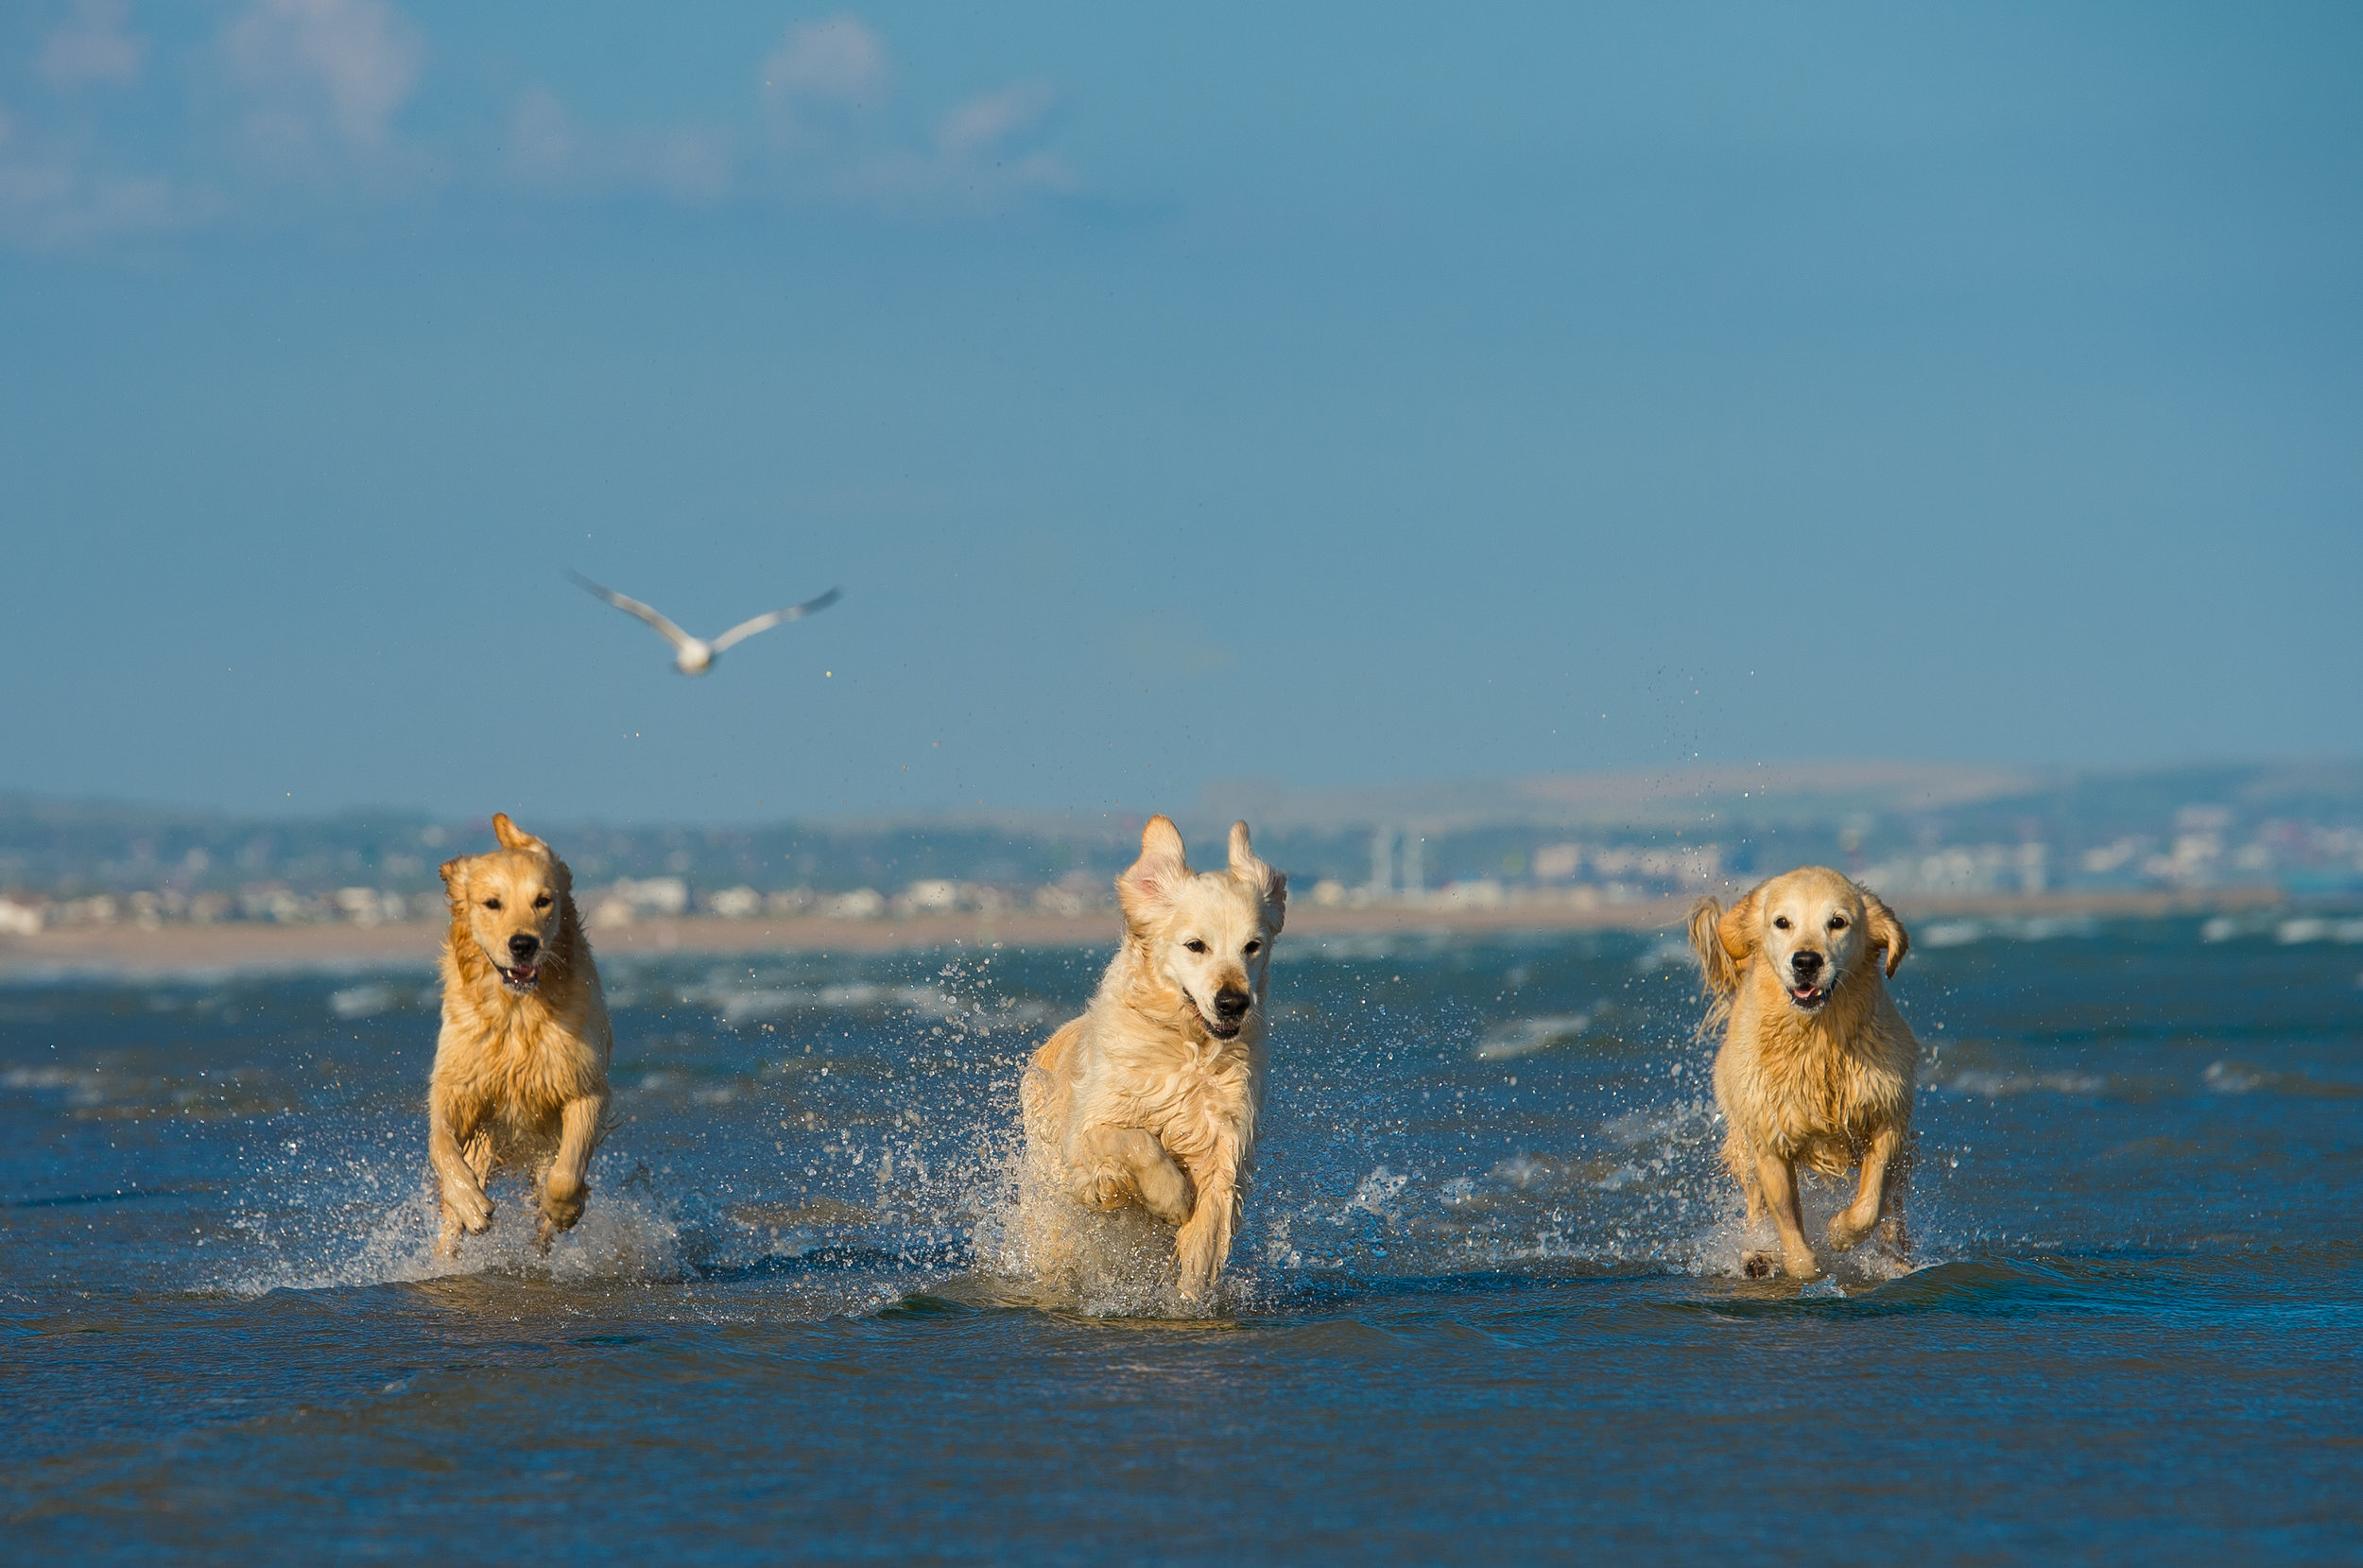 These three Golden Retrievers absolutely love the beach and water and chasing a ball, so it was an obvious decision to have their shoot at the beach